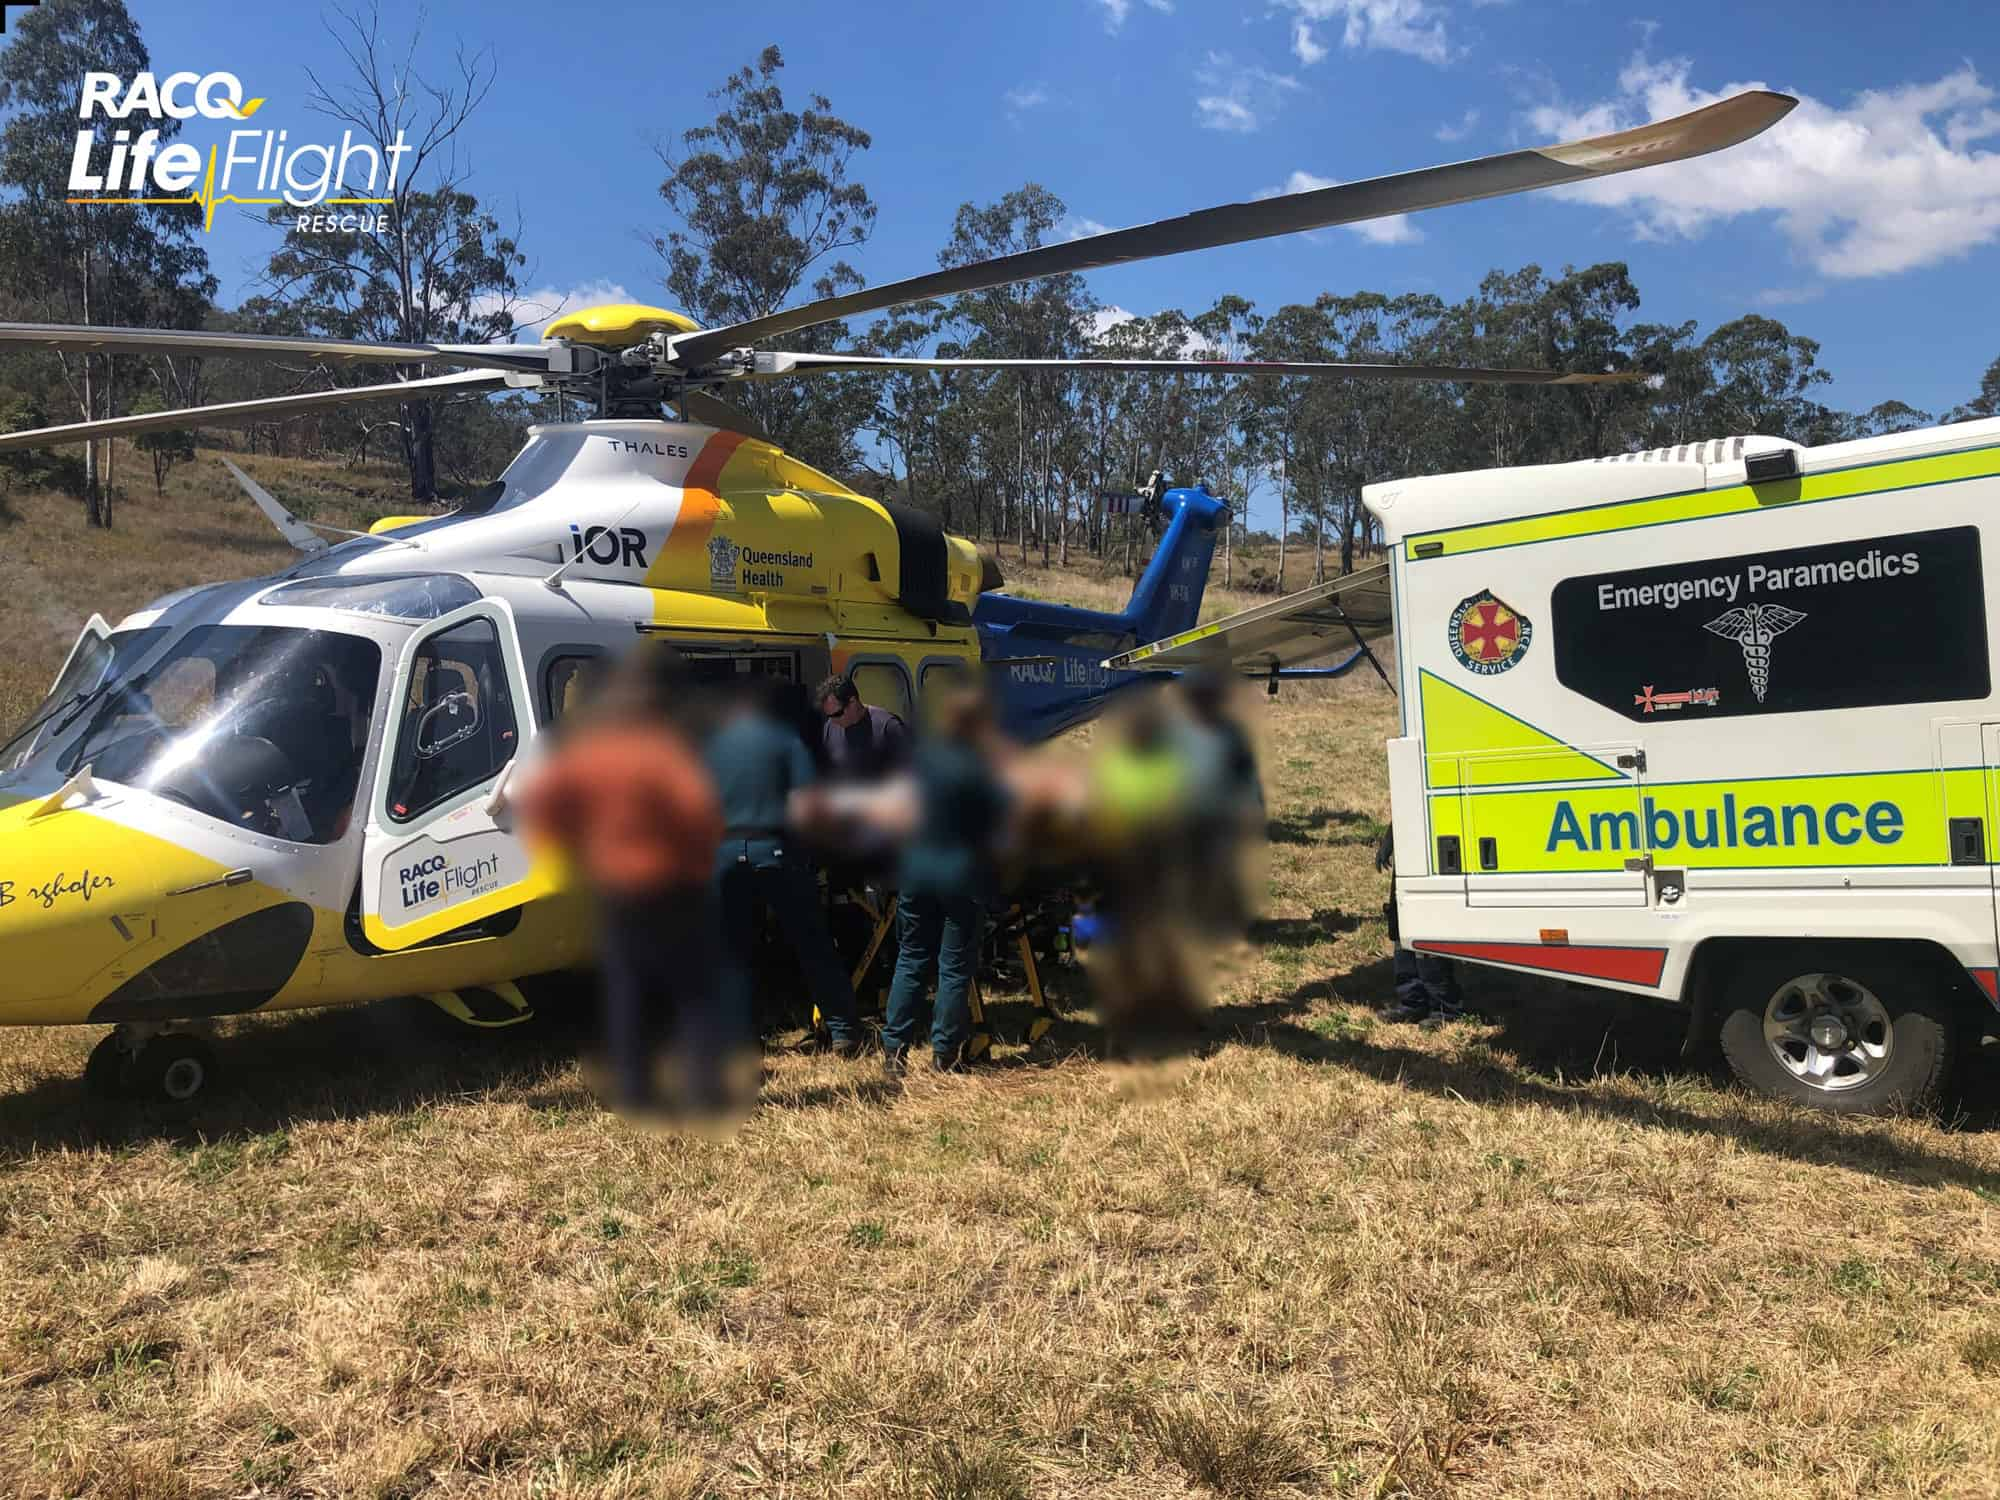 Aeromedical crew winched to scene of tractor rollover